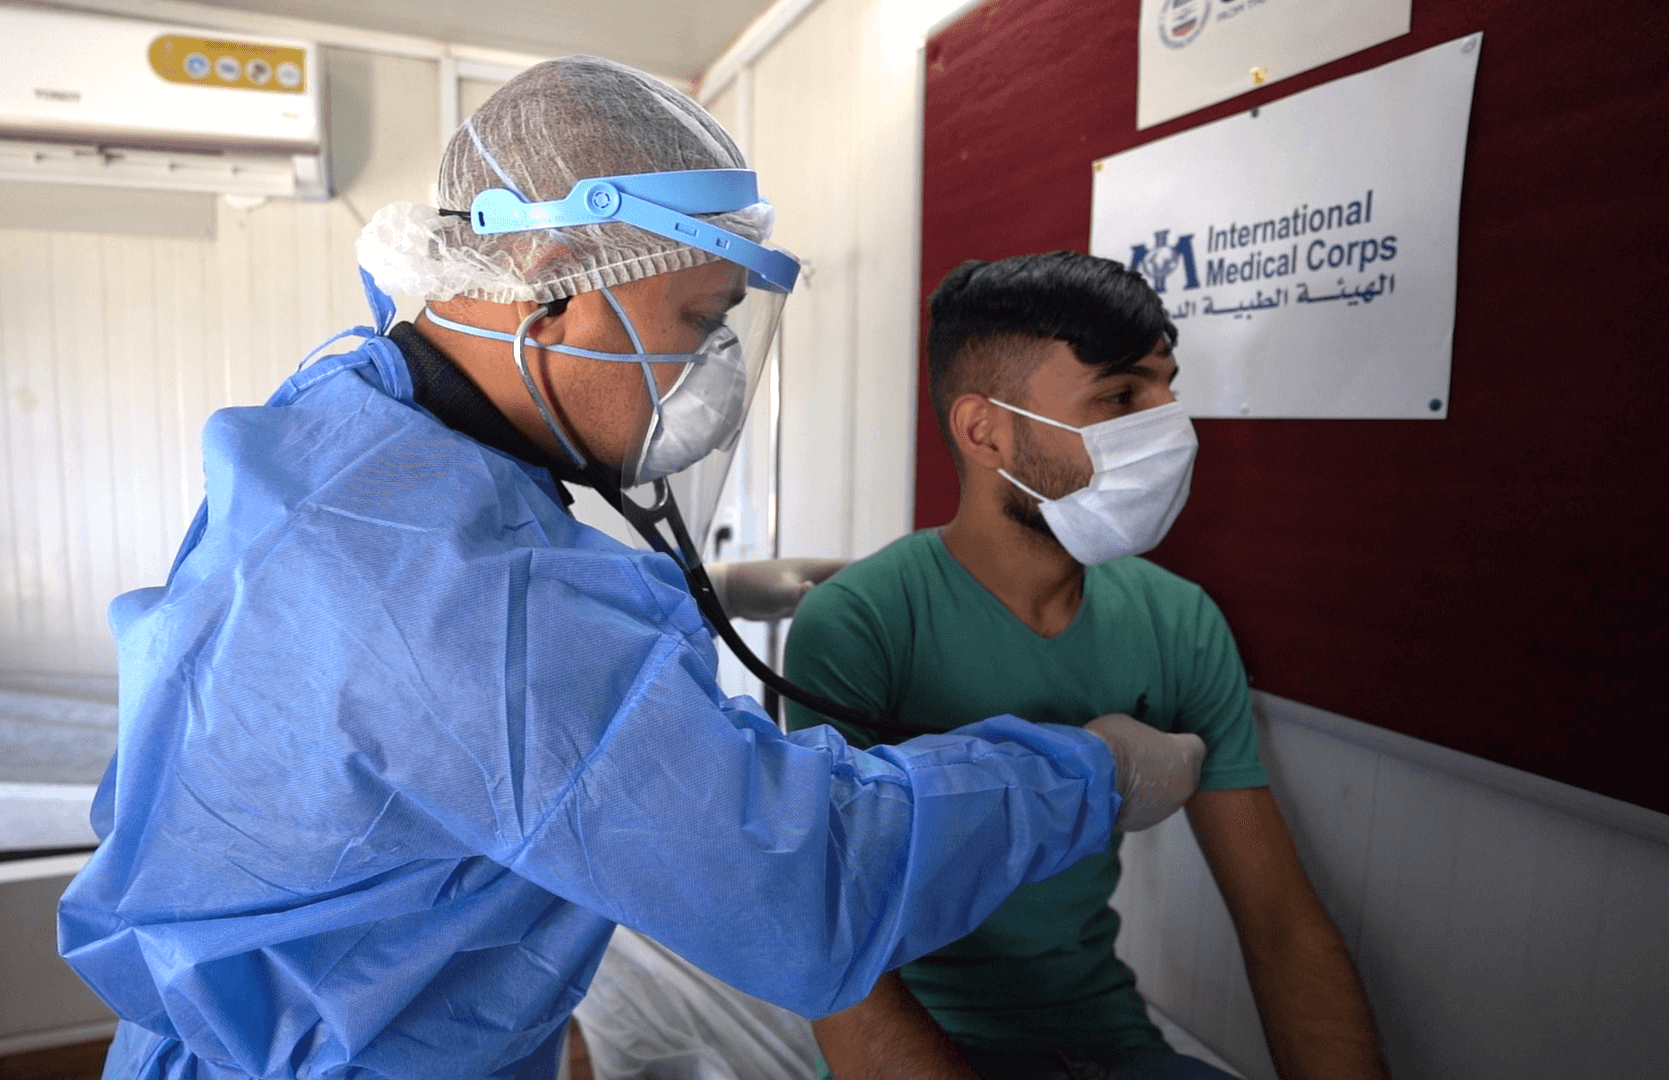 In Iraq, our team is securing PPE and providing training for frontline health workers on COVID-19 prevention and management.